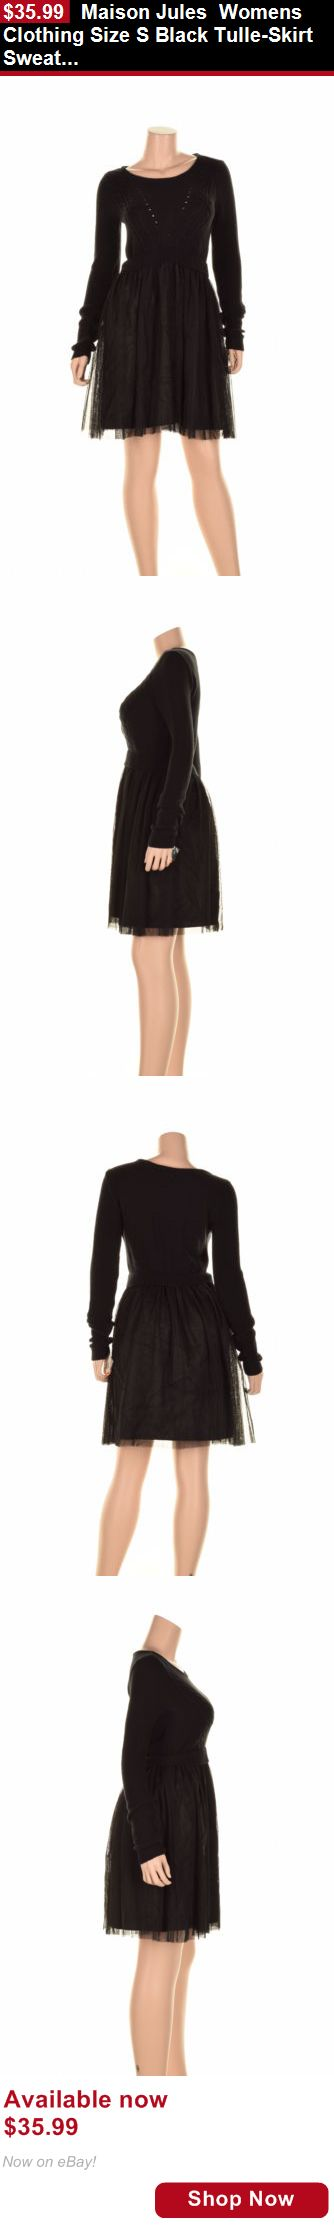 Women vintage reproductions: Maison Jules Womens Clothing Size S Black Tulle-Skirt Sweater Dress New BUY IT NOW ONLY: $35.99